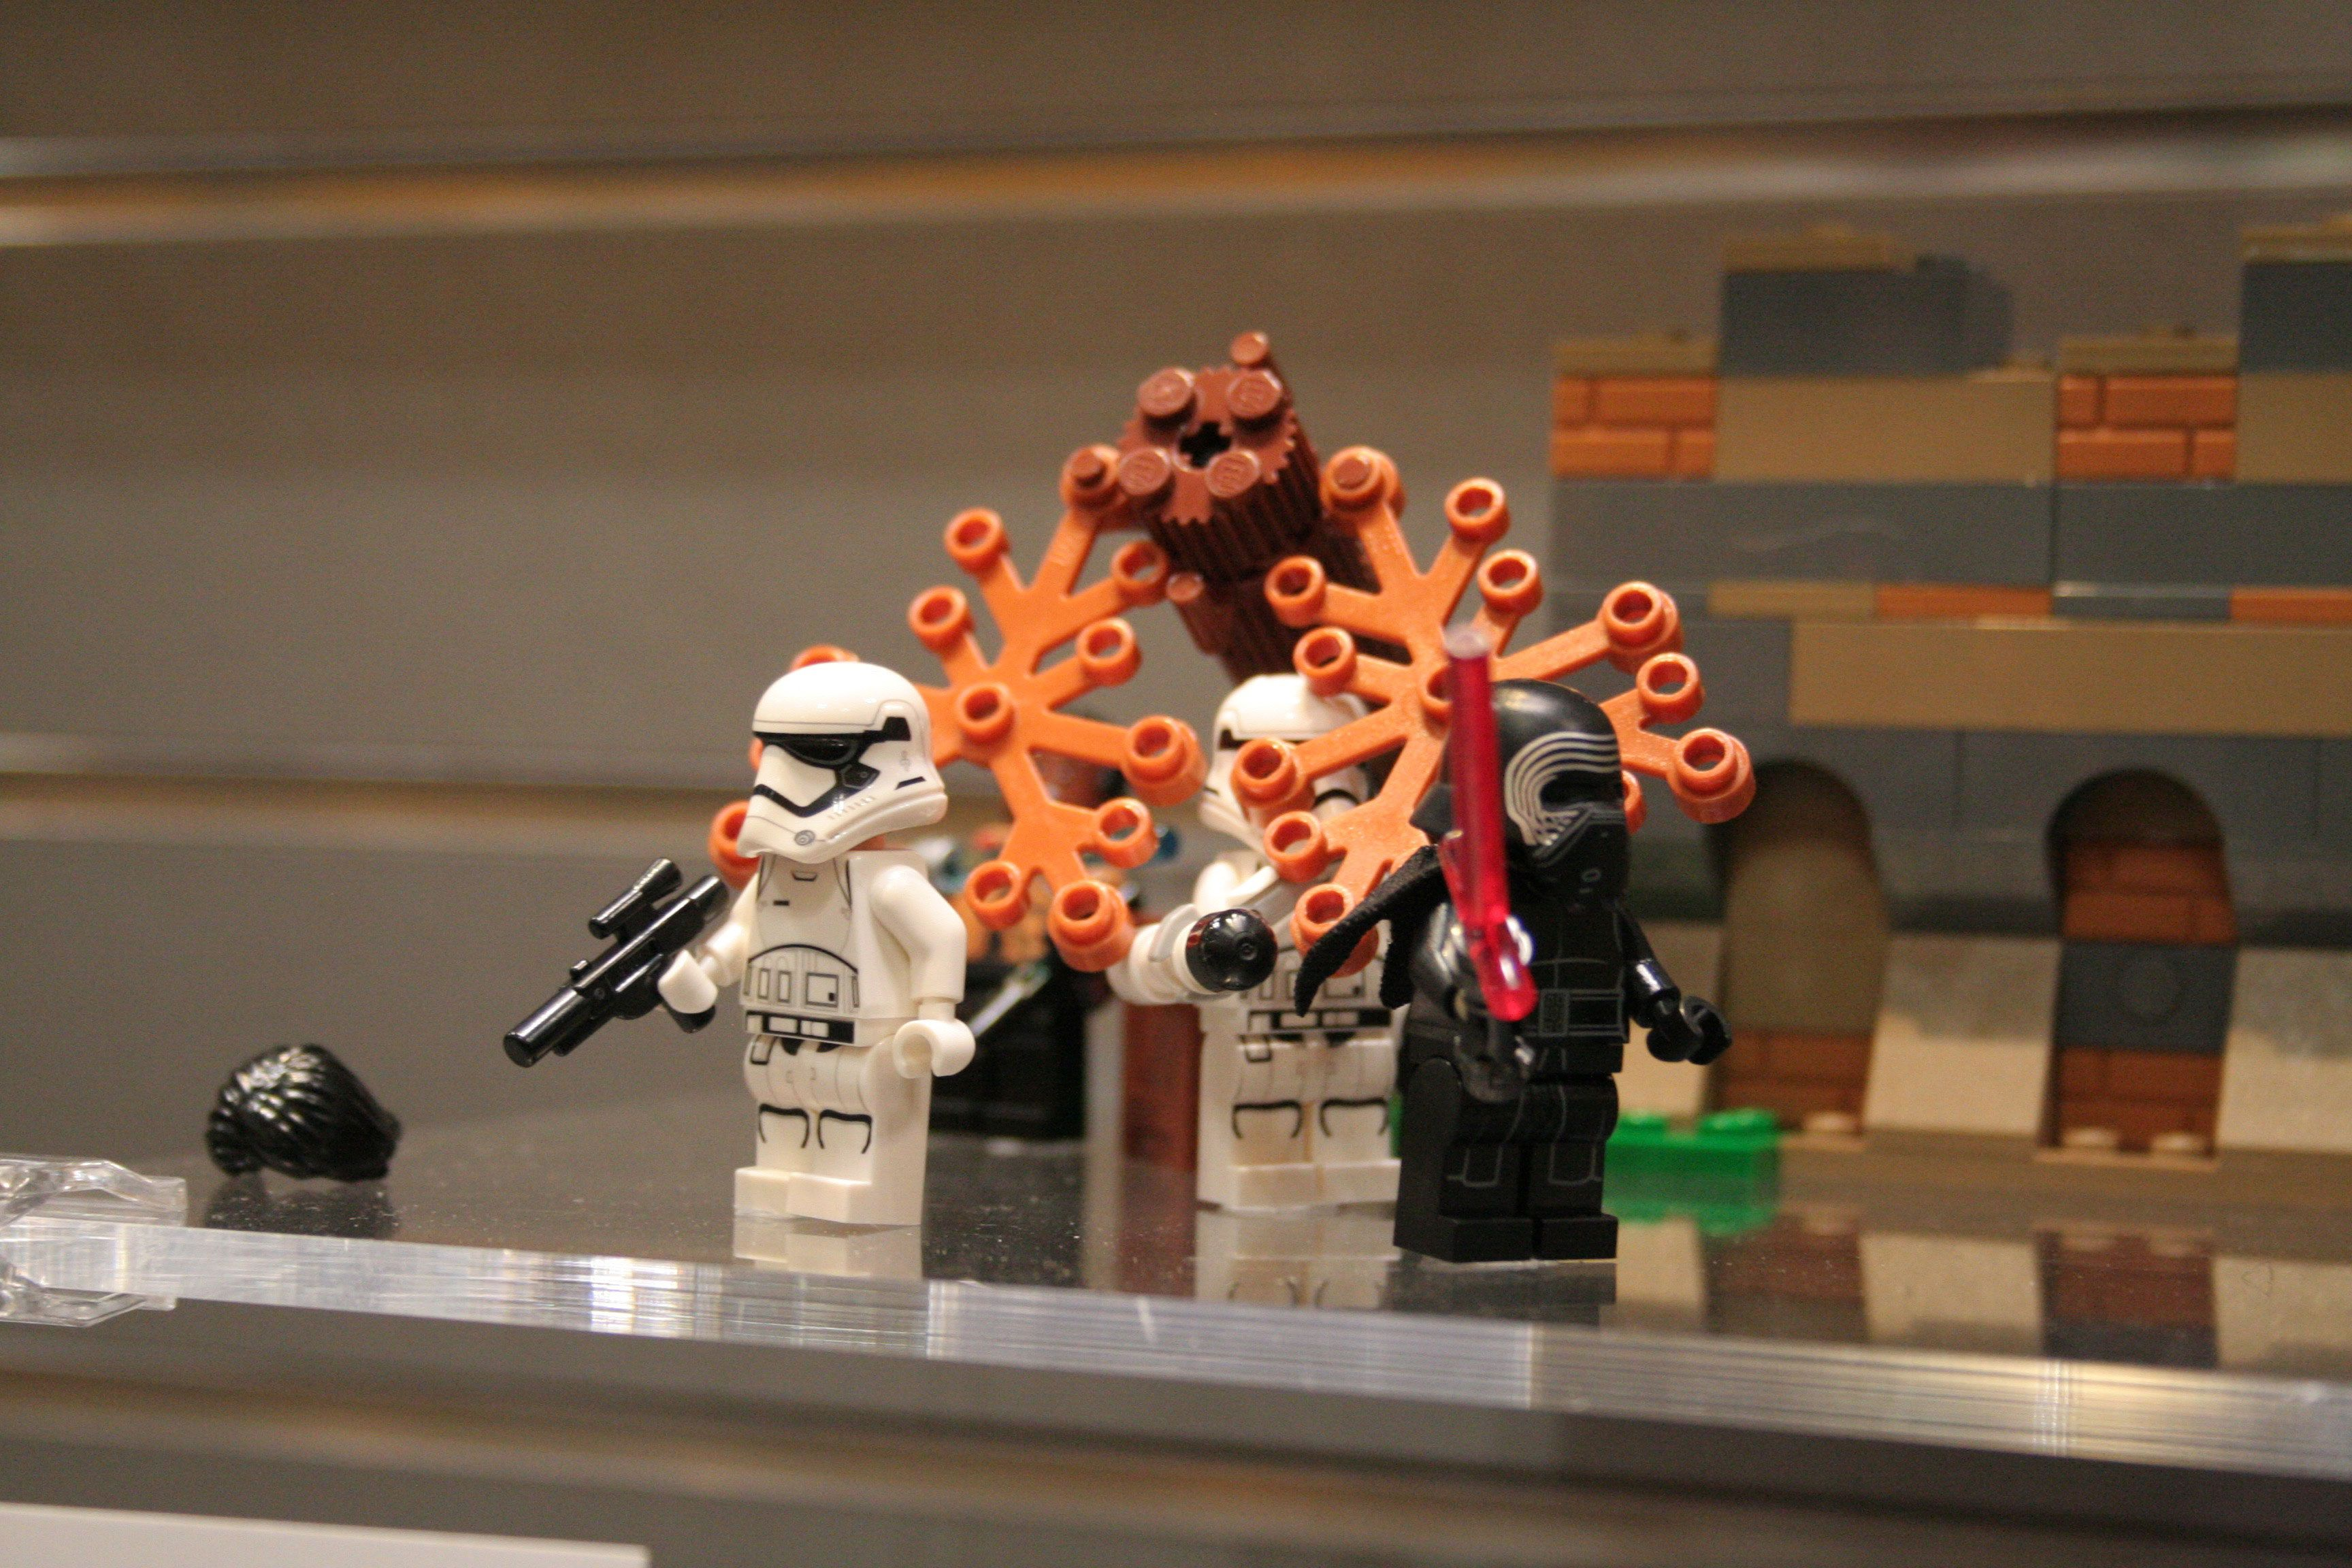 star wars the force awakens lego sets unveiled at toy fair collider